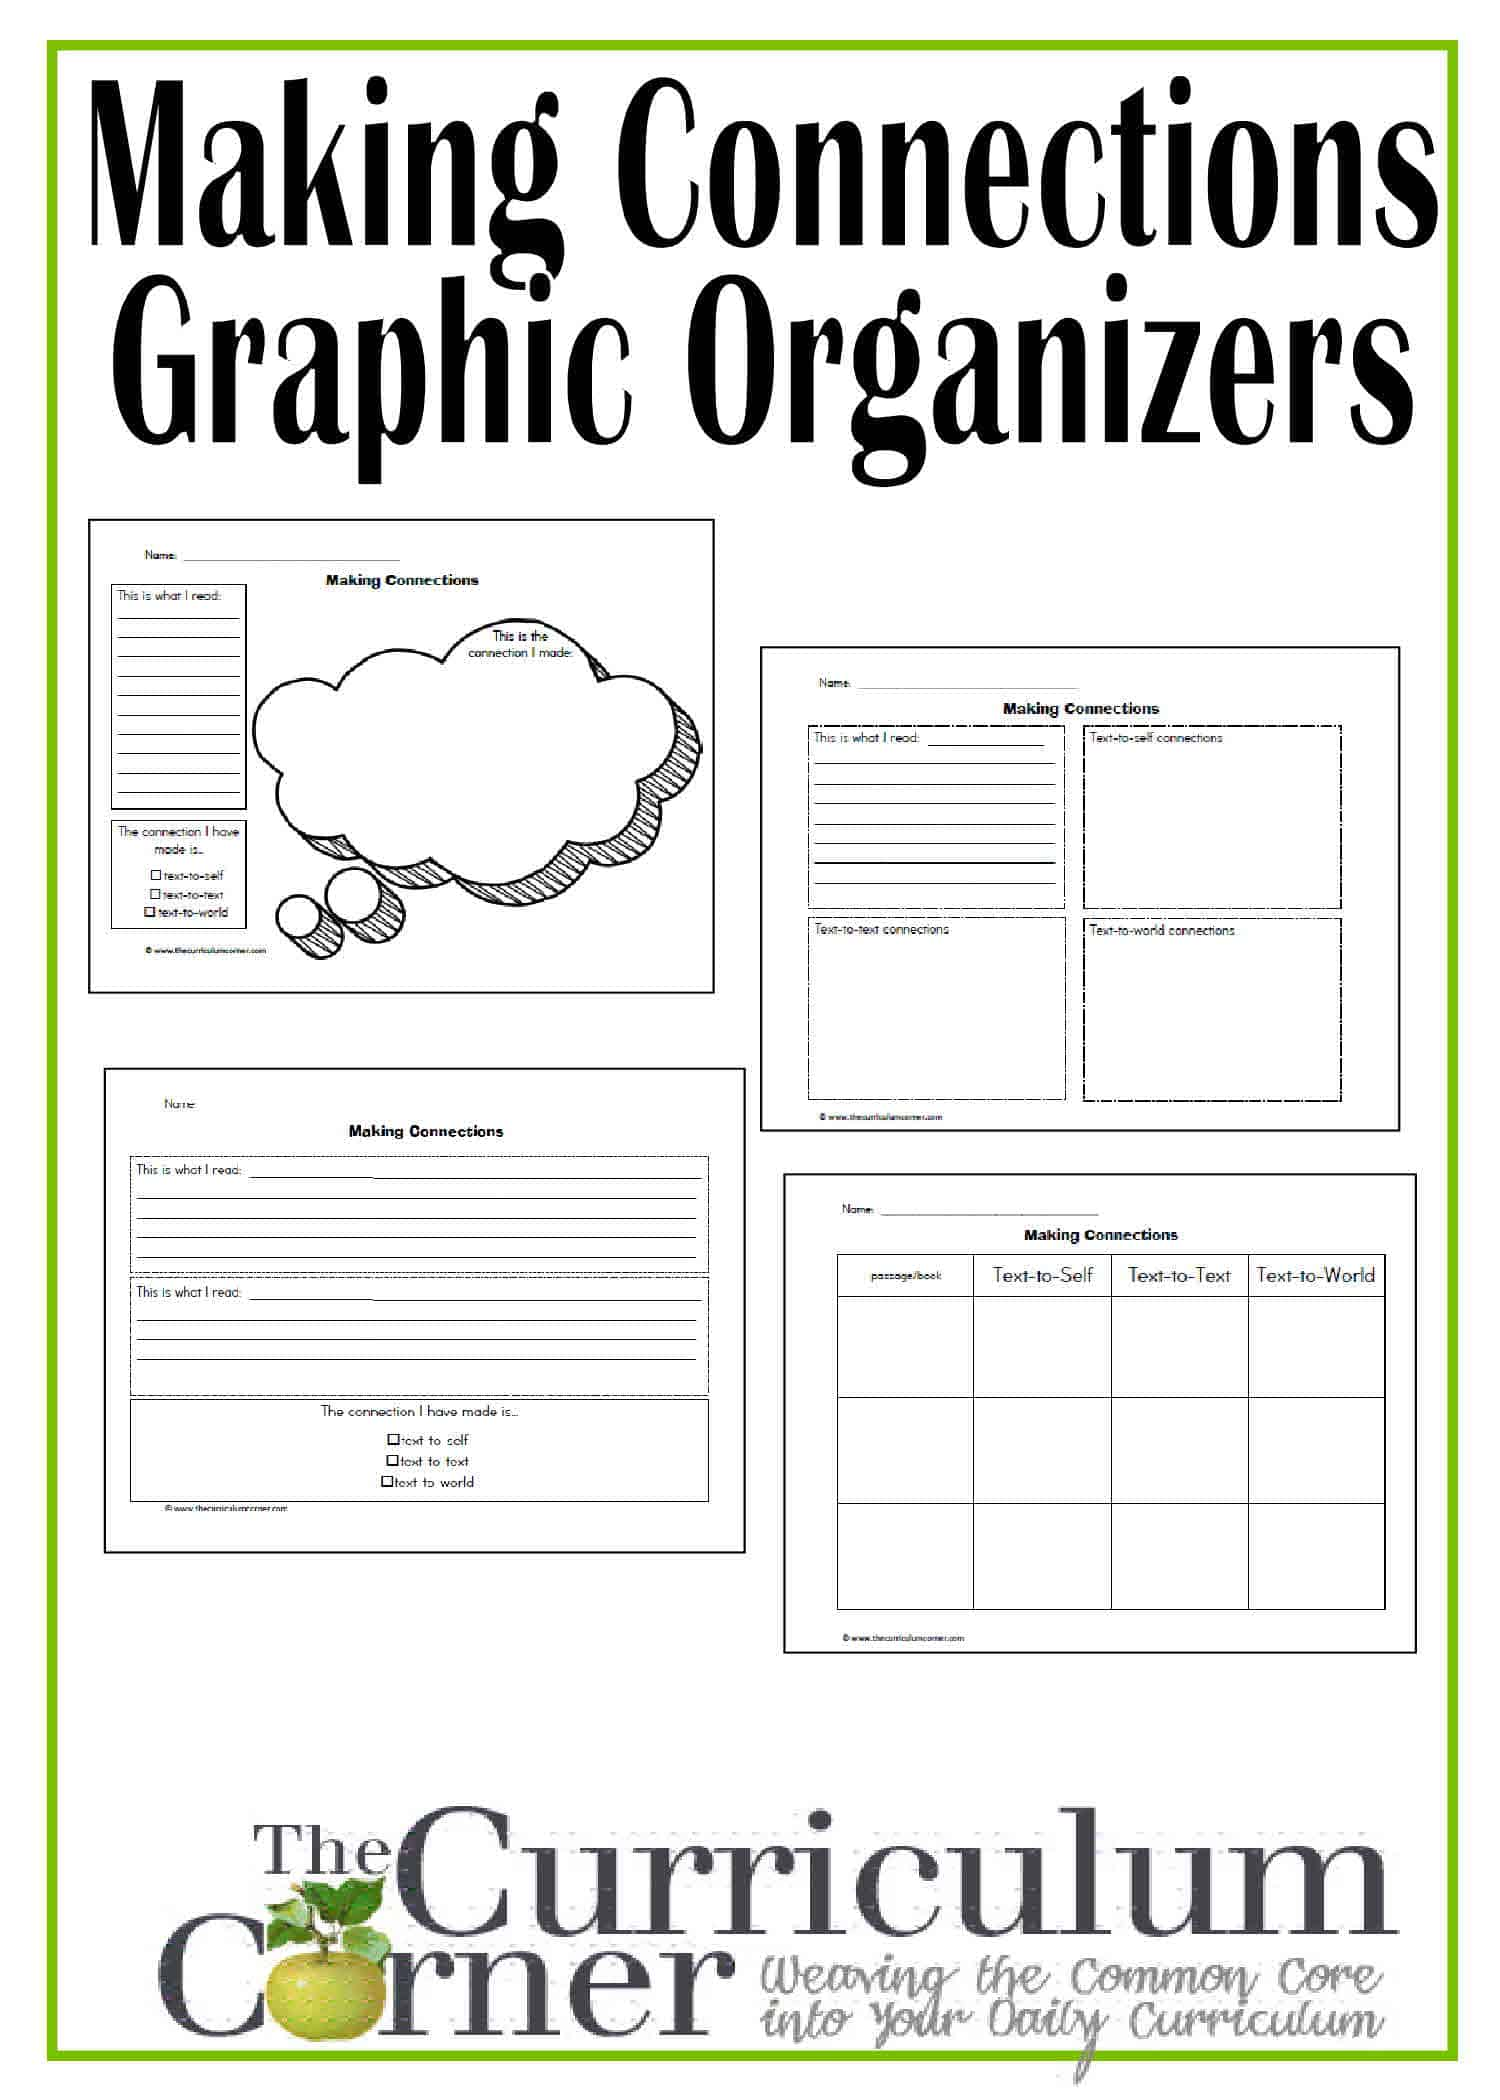 worksheet Making Connections Worksheet close reading making connections while the curriculum graphic organizers free from corner